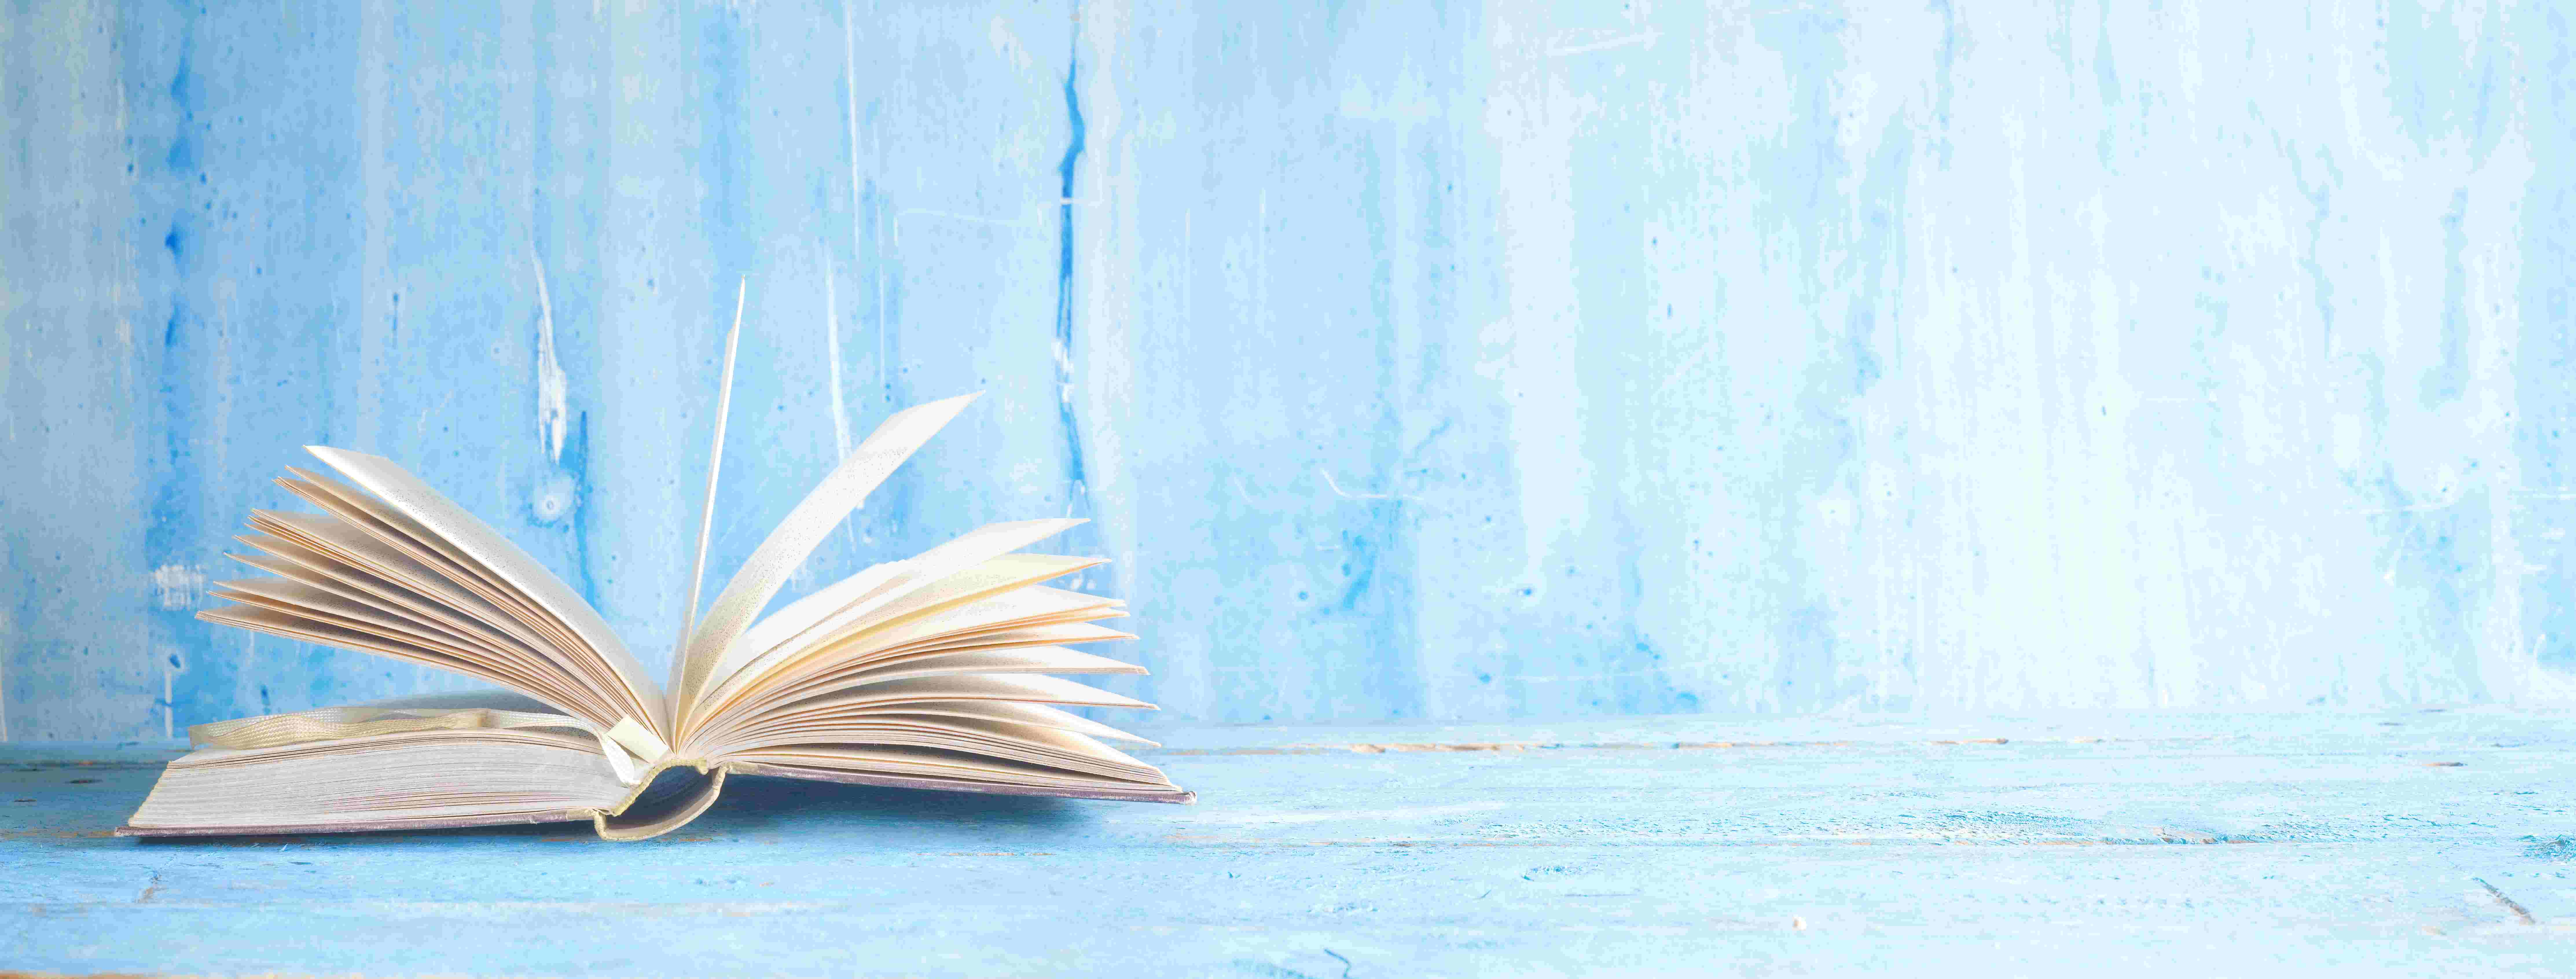 opened-book-on-blue-grungy-background-panoramic-good-copy-space